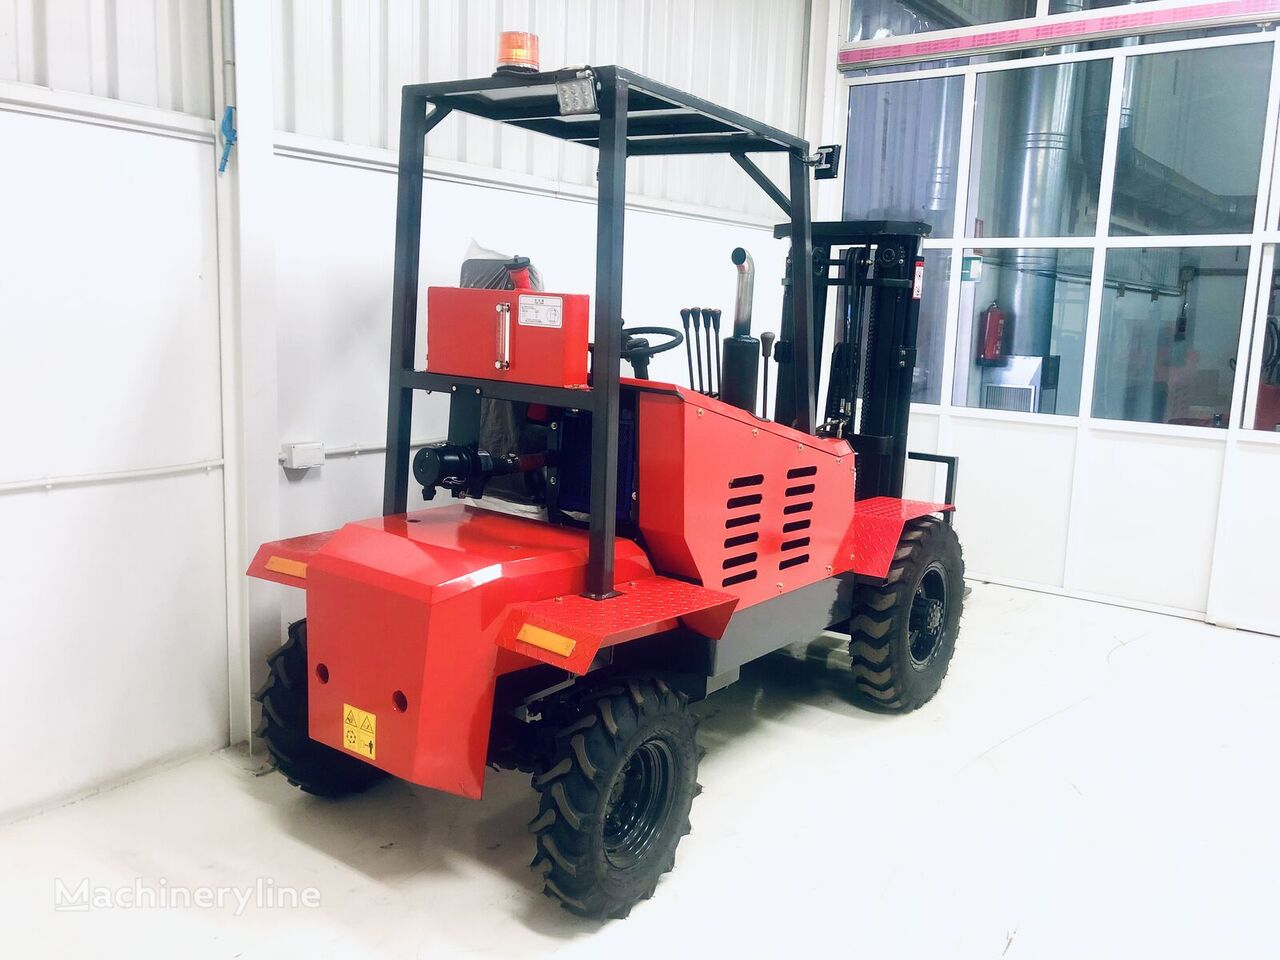 new SPIDER S15-4WD (4x4) - Todo terreno rough terrain forklift